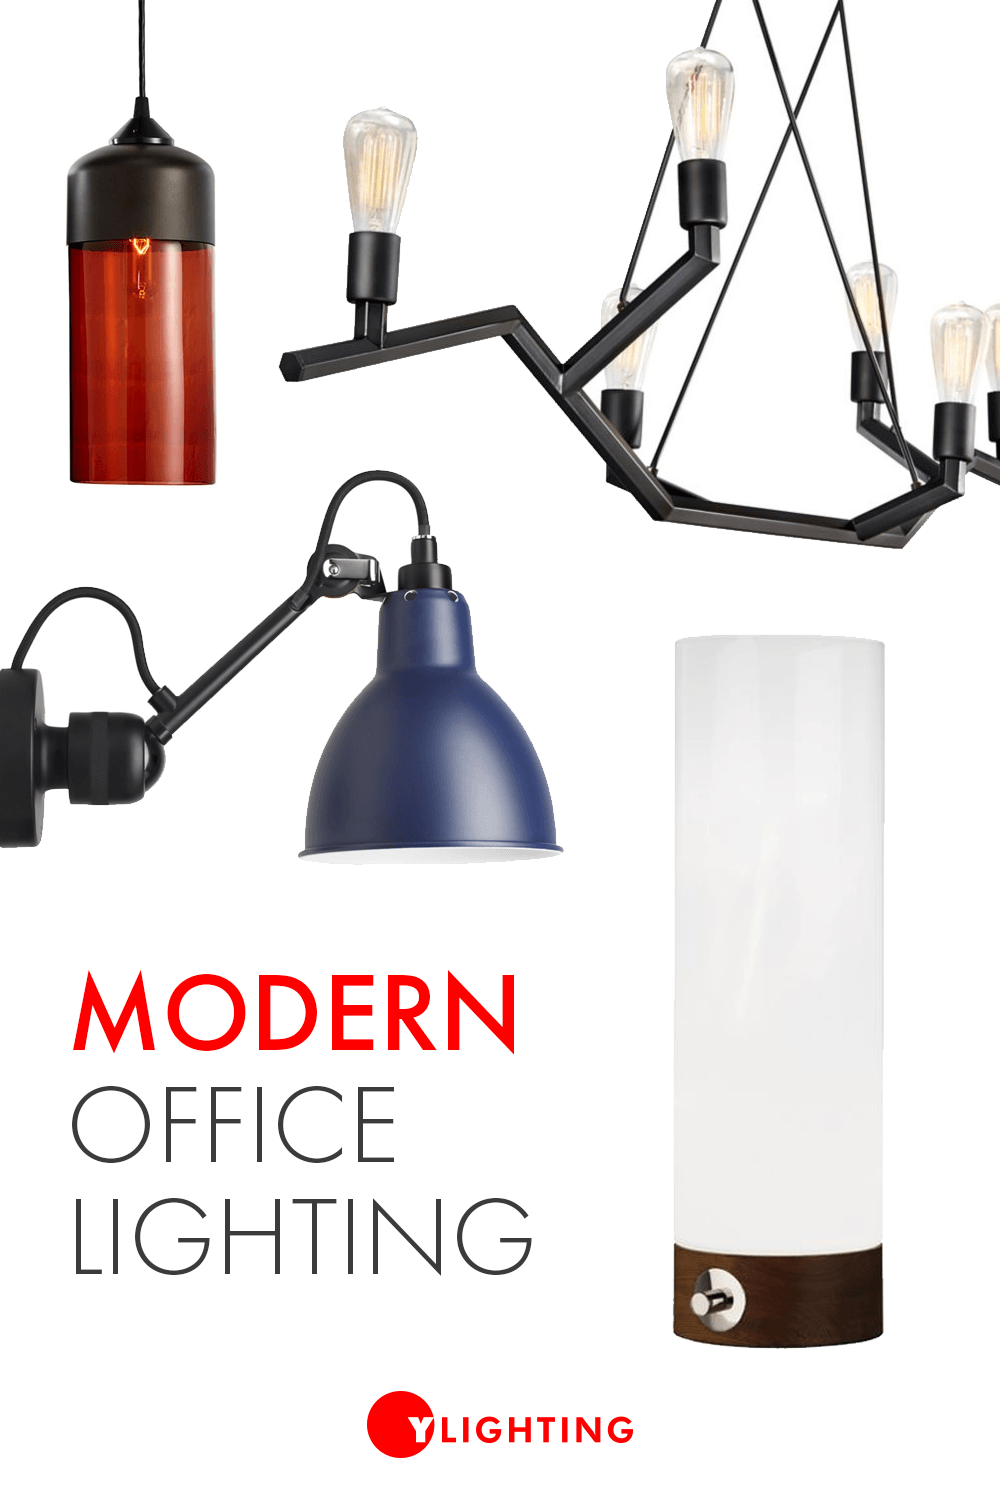 Office Lighting Comes In The Form Of Task Lighting Ambient Lighting And Accent Lighting From Modern D In 2020